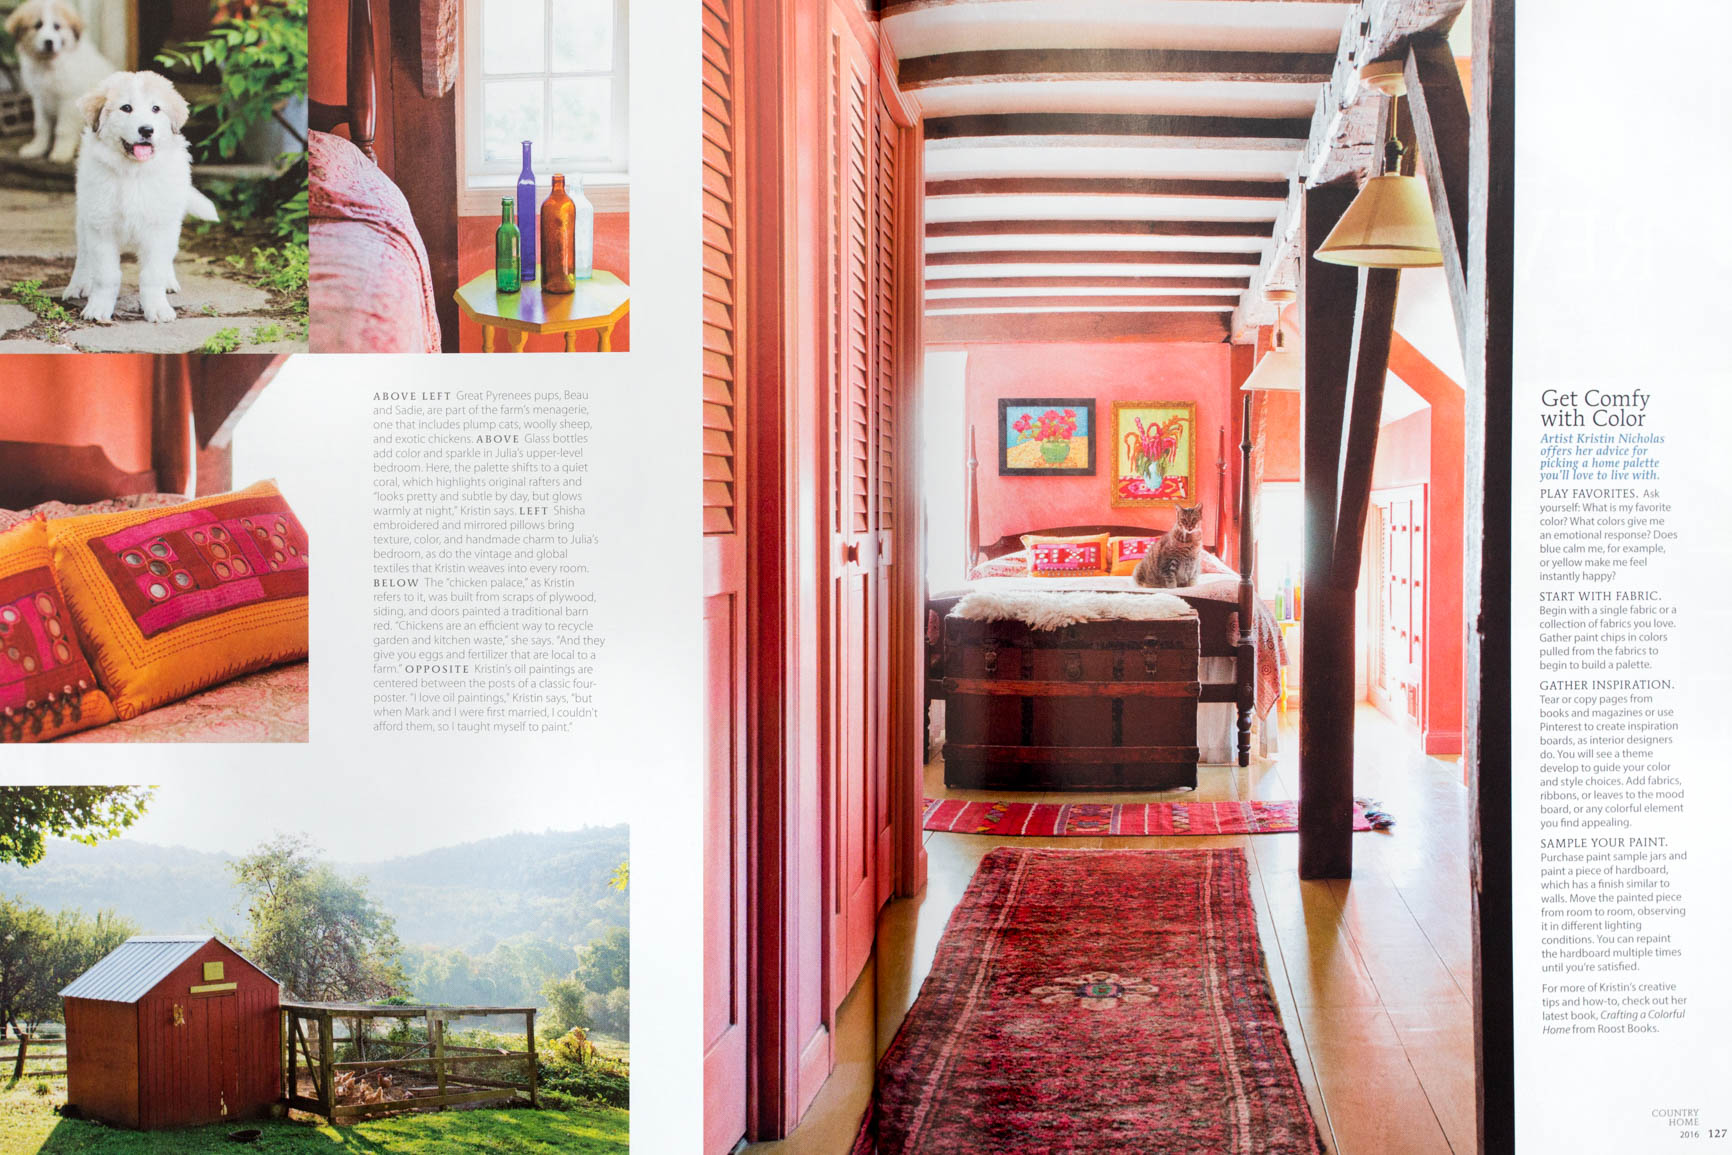 country-home-magazine-colorful-farmhouse-bedroom.jpg